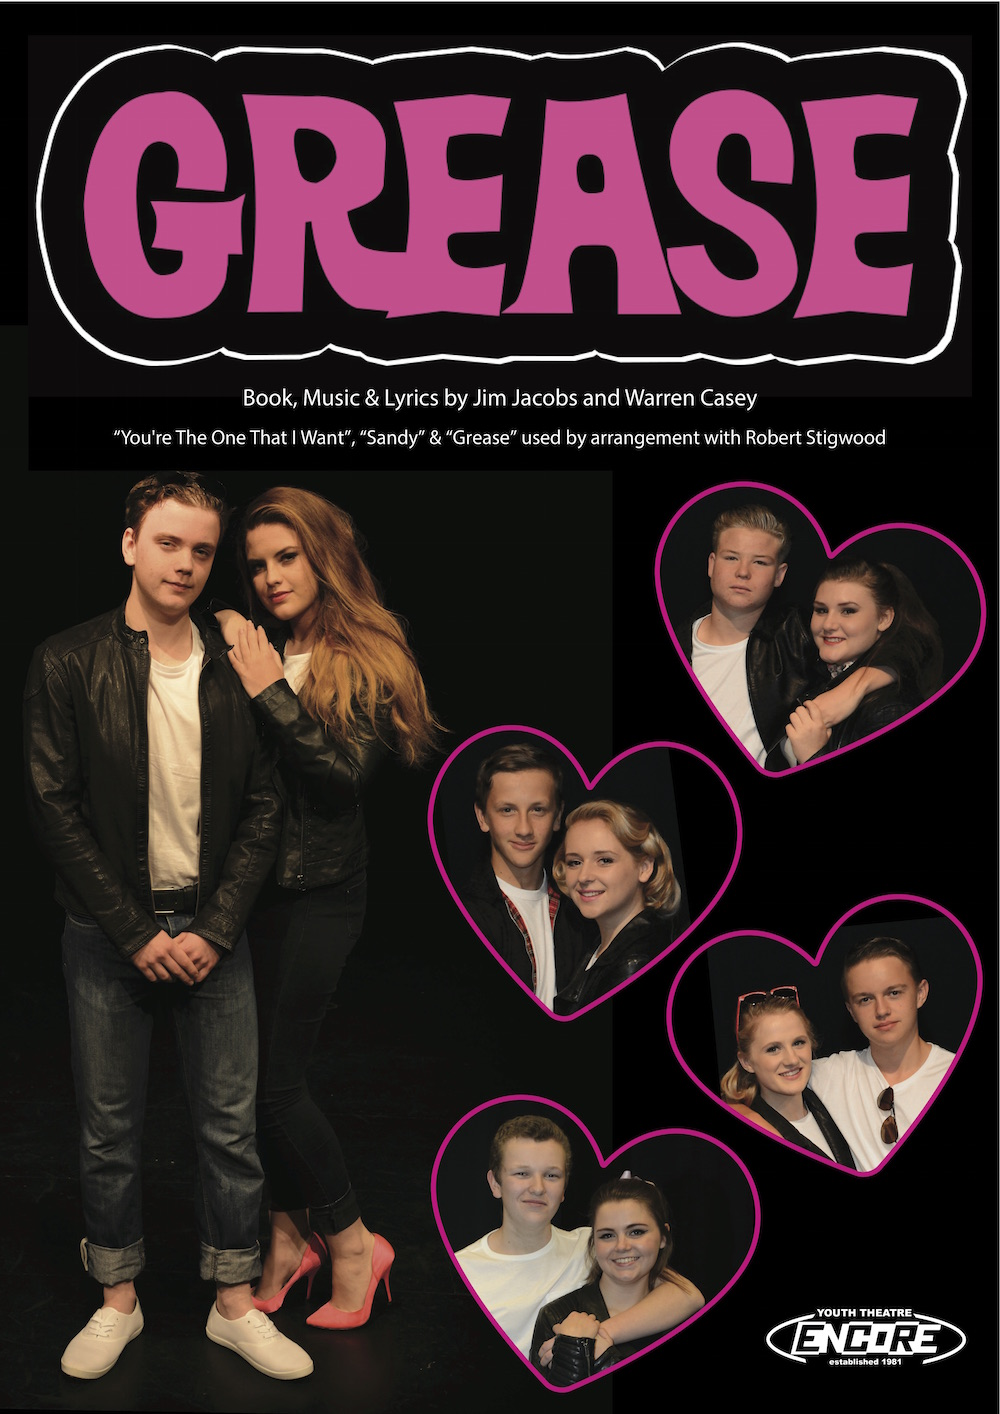 GREASE Flyer Front copy 2.jpg